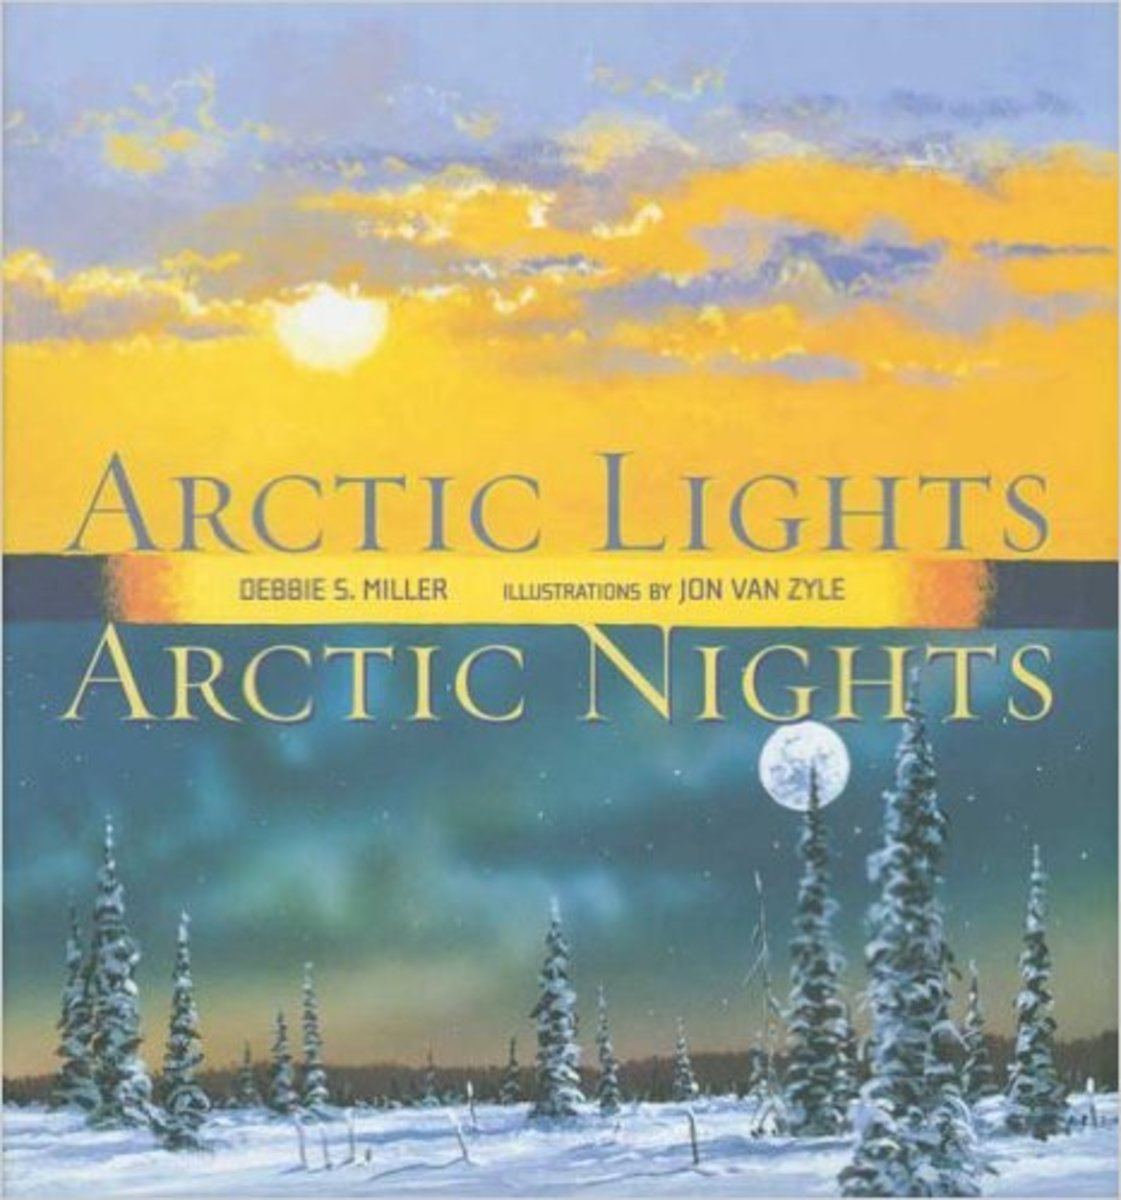 Arctic Lights, Arctic Nights by Debbie S. Miller - Image is from amazon.com